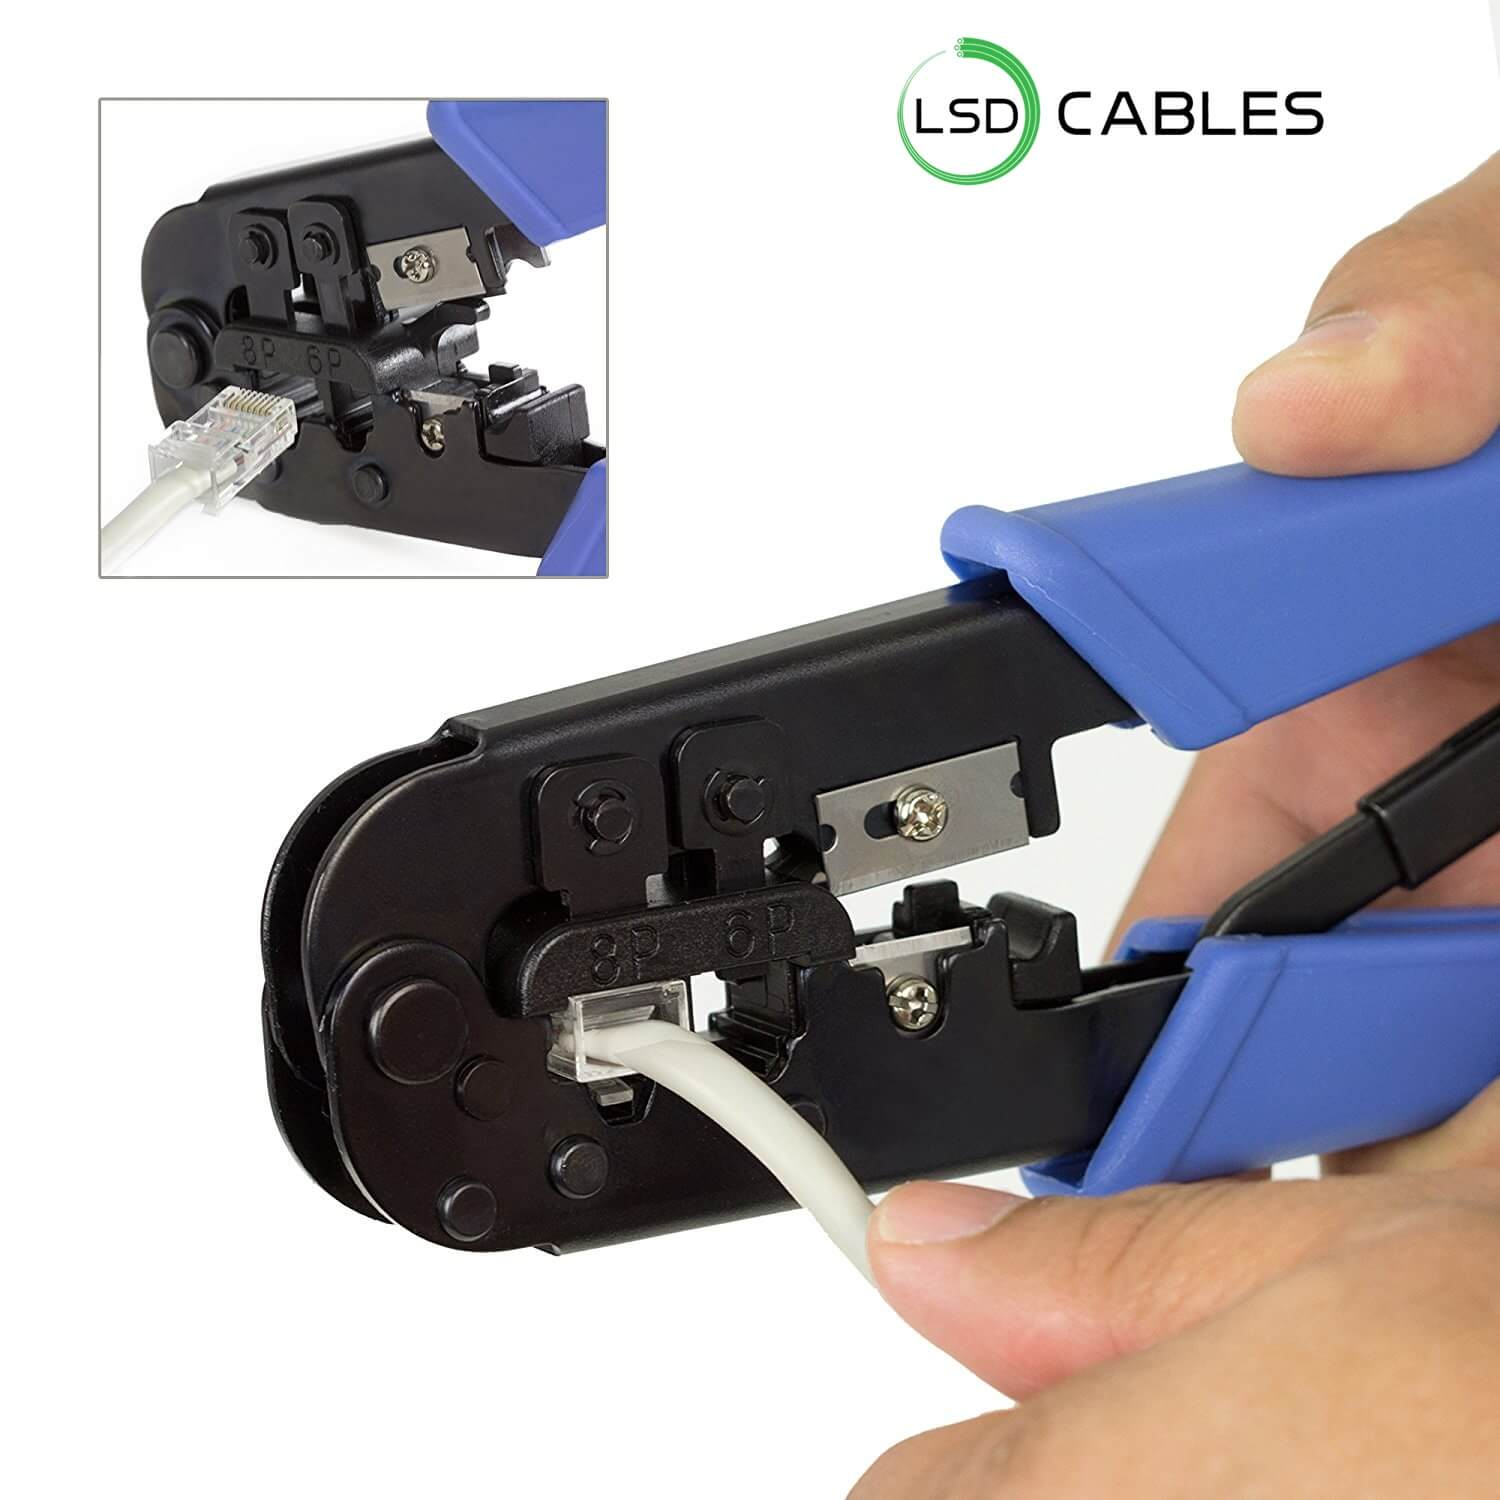 LSDCABLES RJ45 Crimping Tool L T01 2 - Crimping Tool Easy Handling RJ45 Connector  L-T01